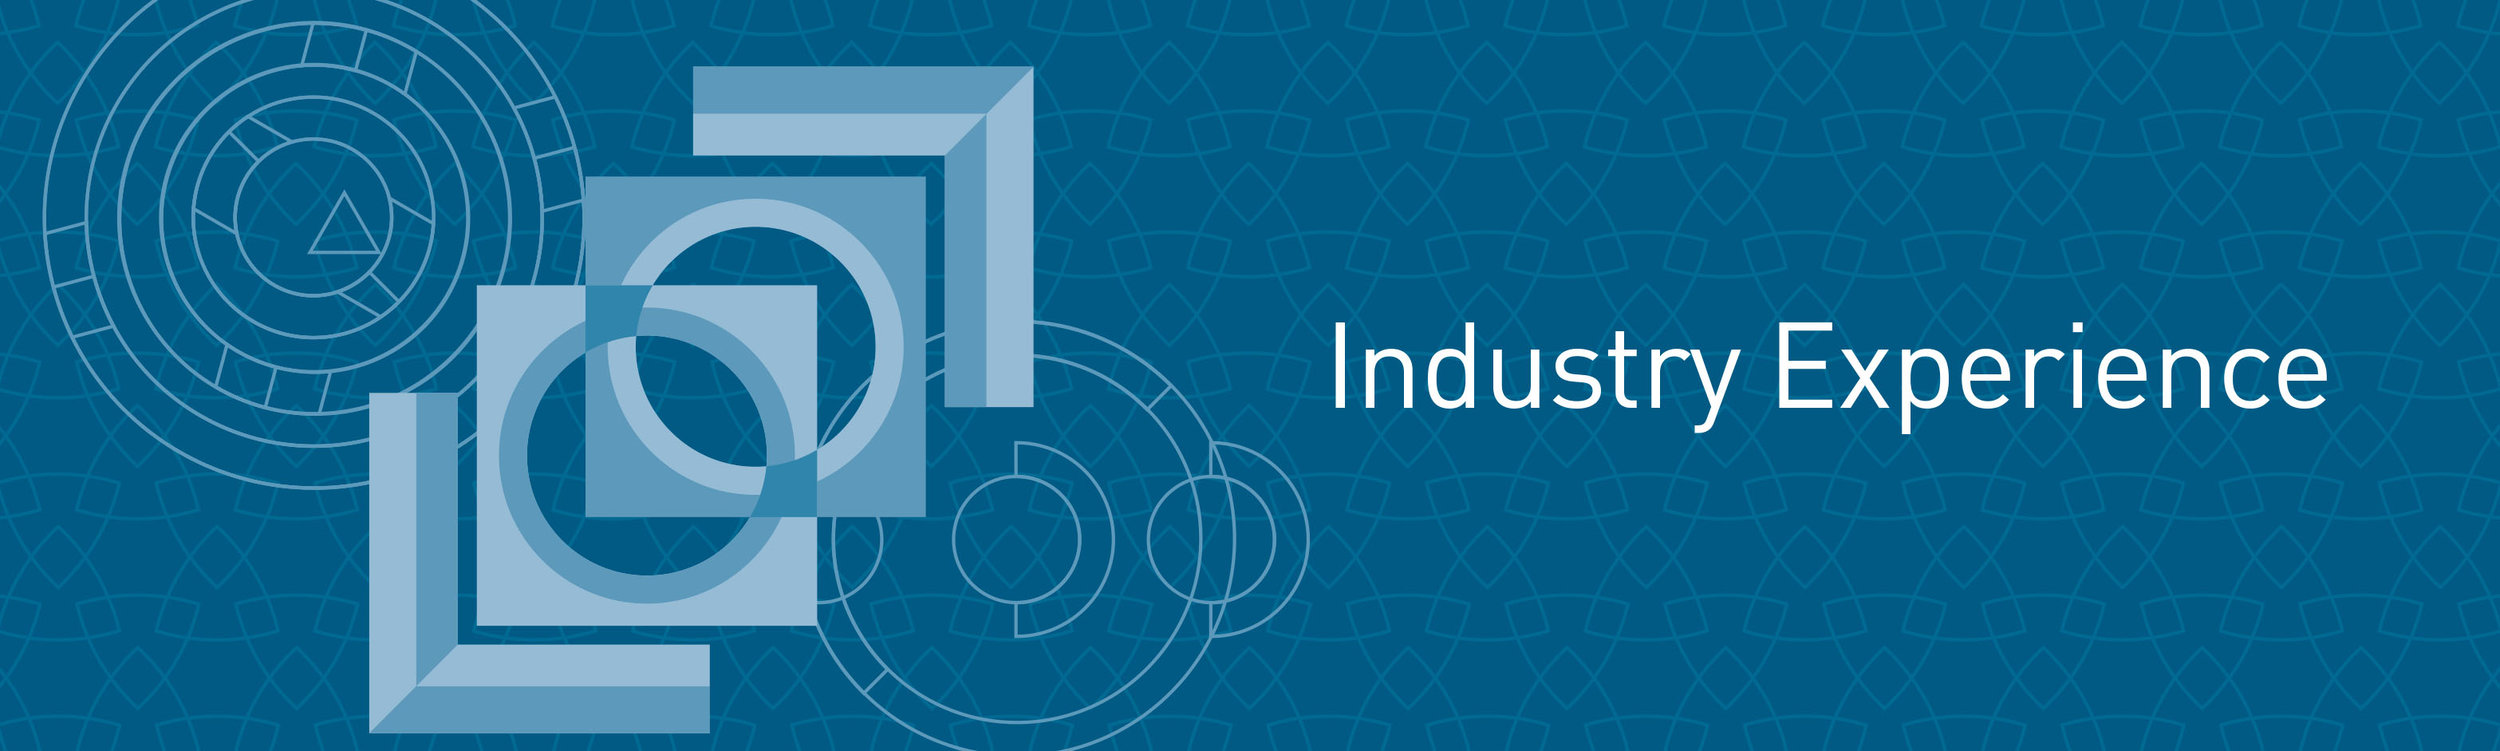 Section for identifying competencies by industry.